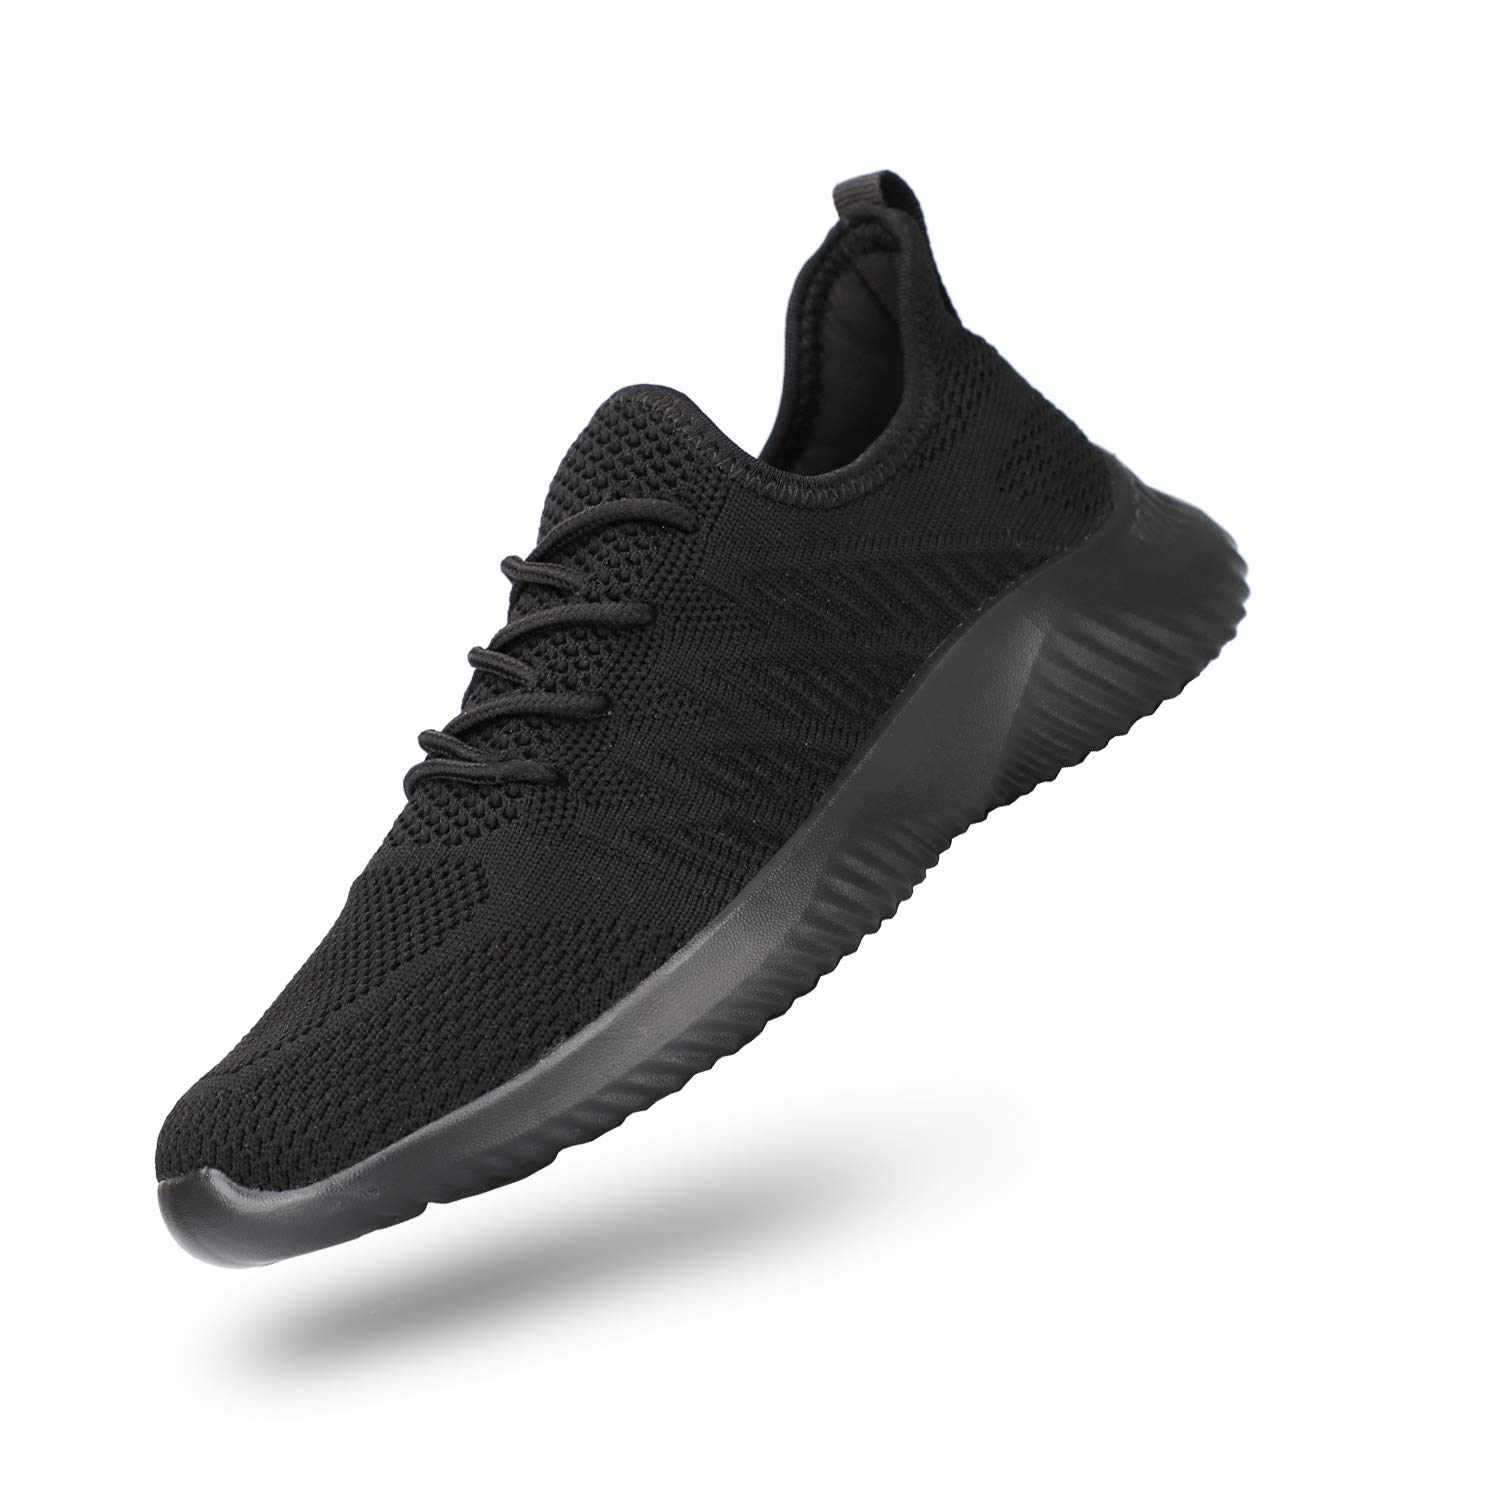 Womens Slip on Sneakers Ultra Lightweight Breathable Fashion Sports Gym Jogging Athletic Walking Shoes